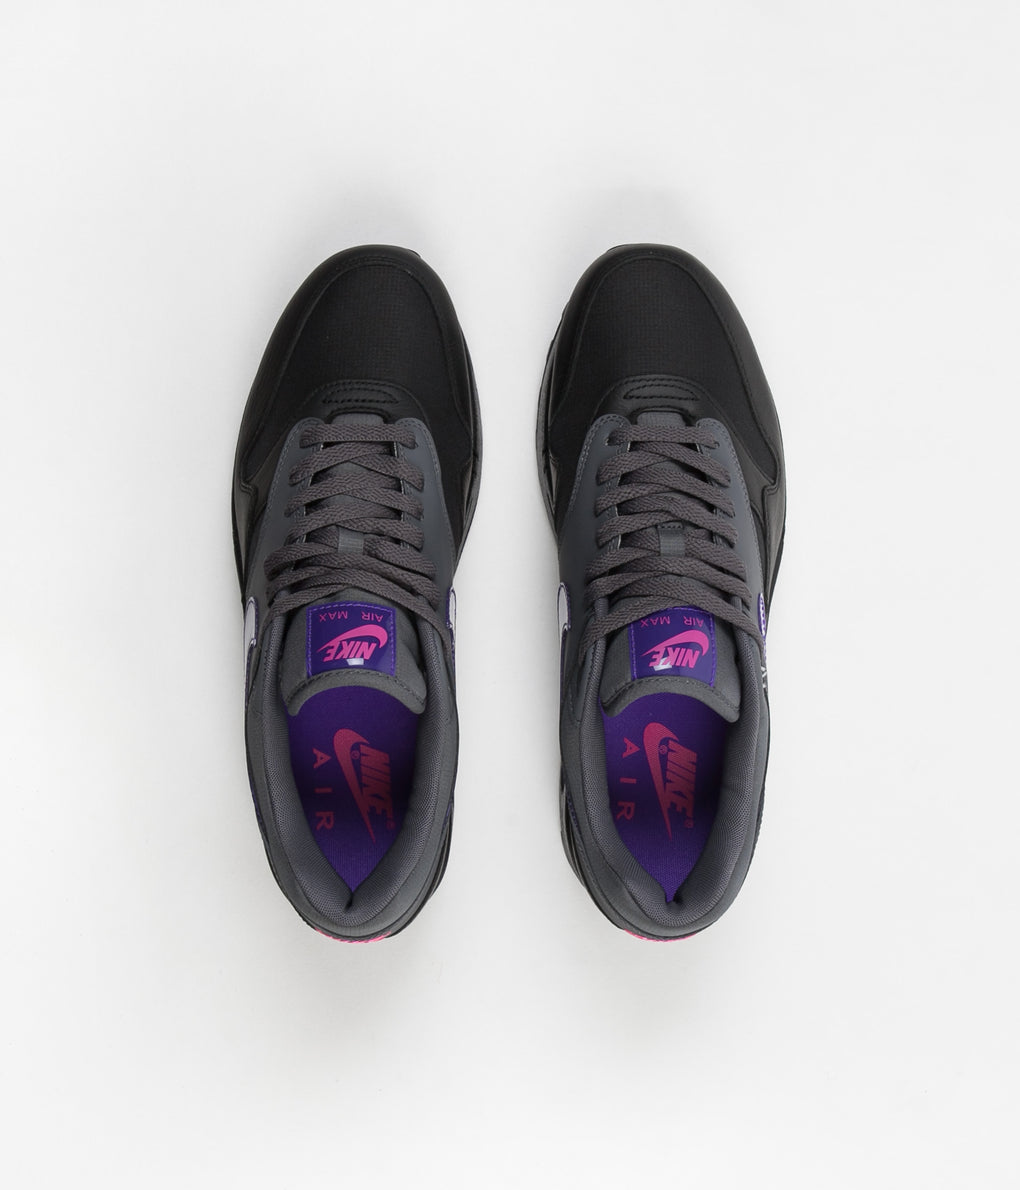 Nike Air Max 1 Shoes - Dark Grey / Fierce Purple - Black - Pink Blast